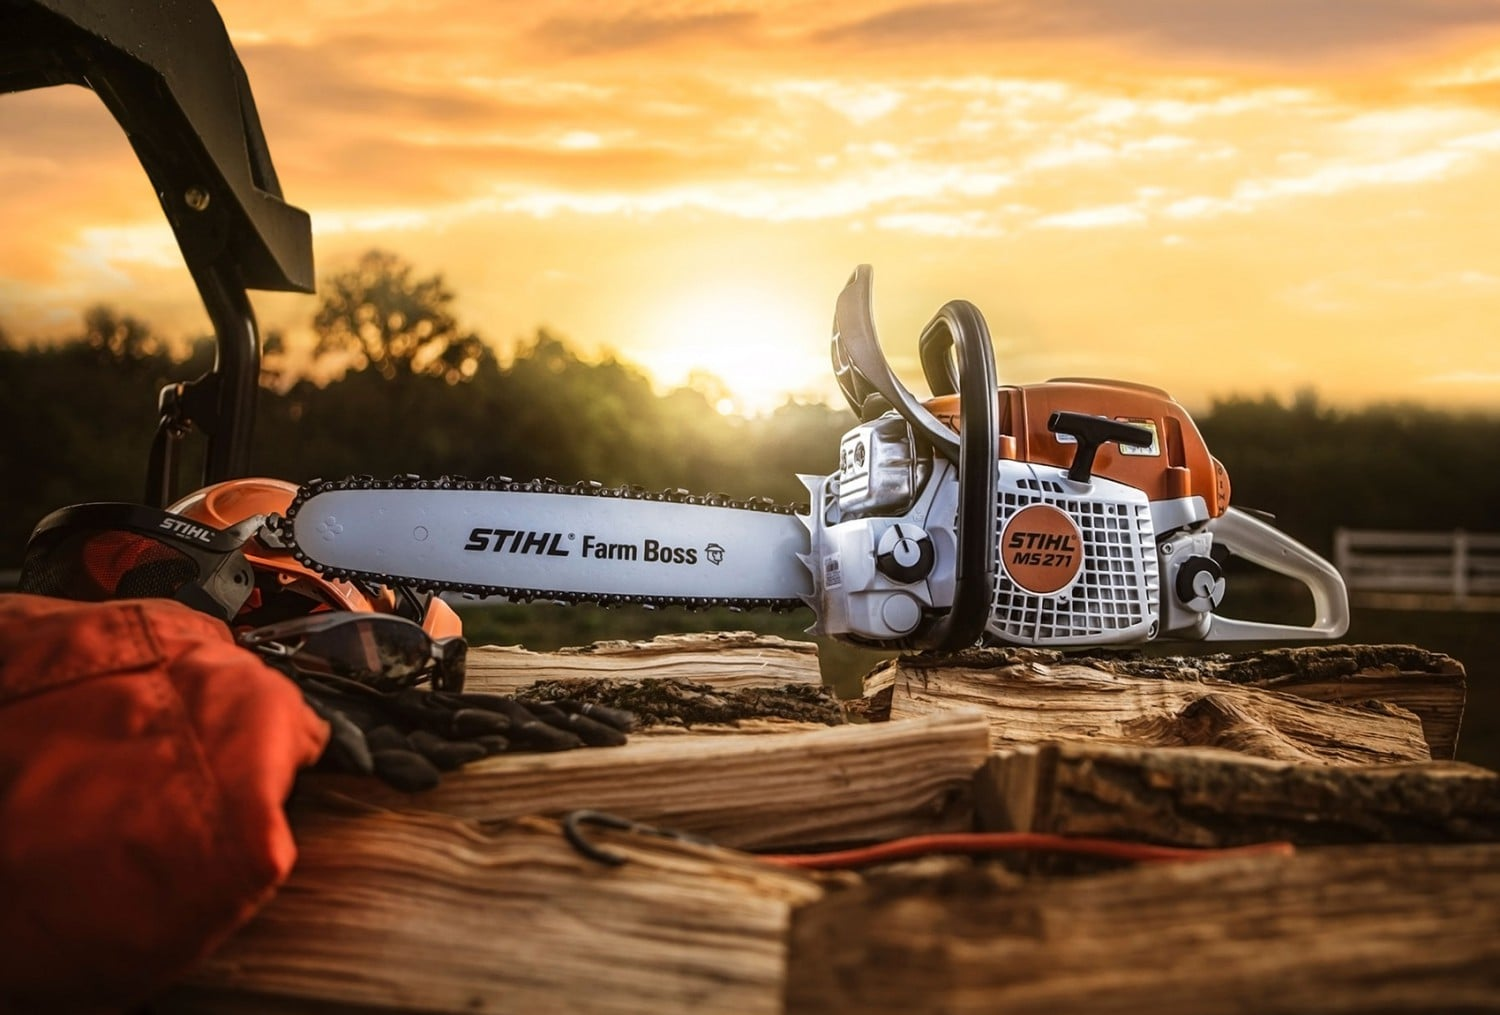 Stihl farm boss